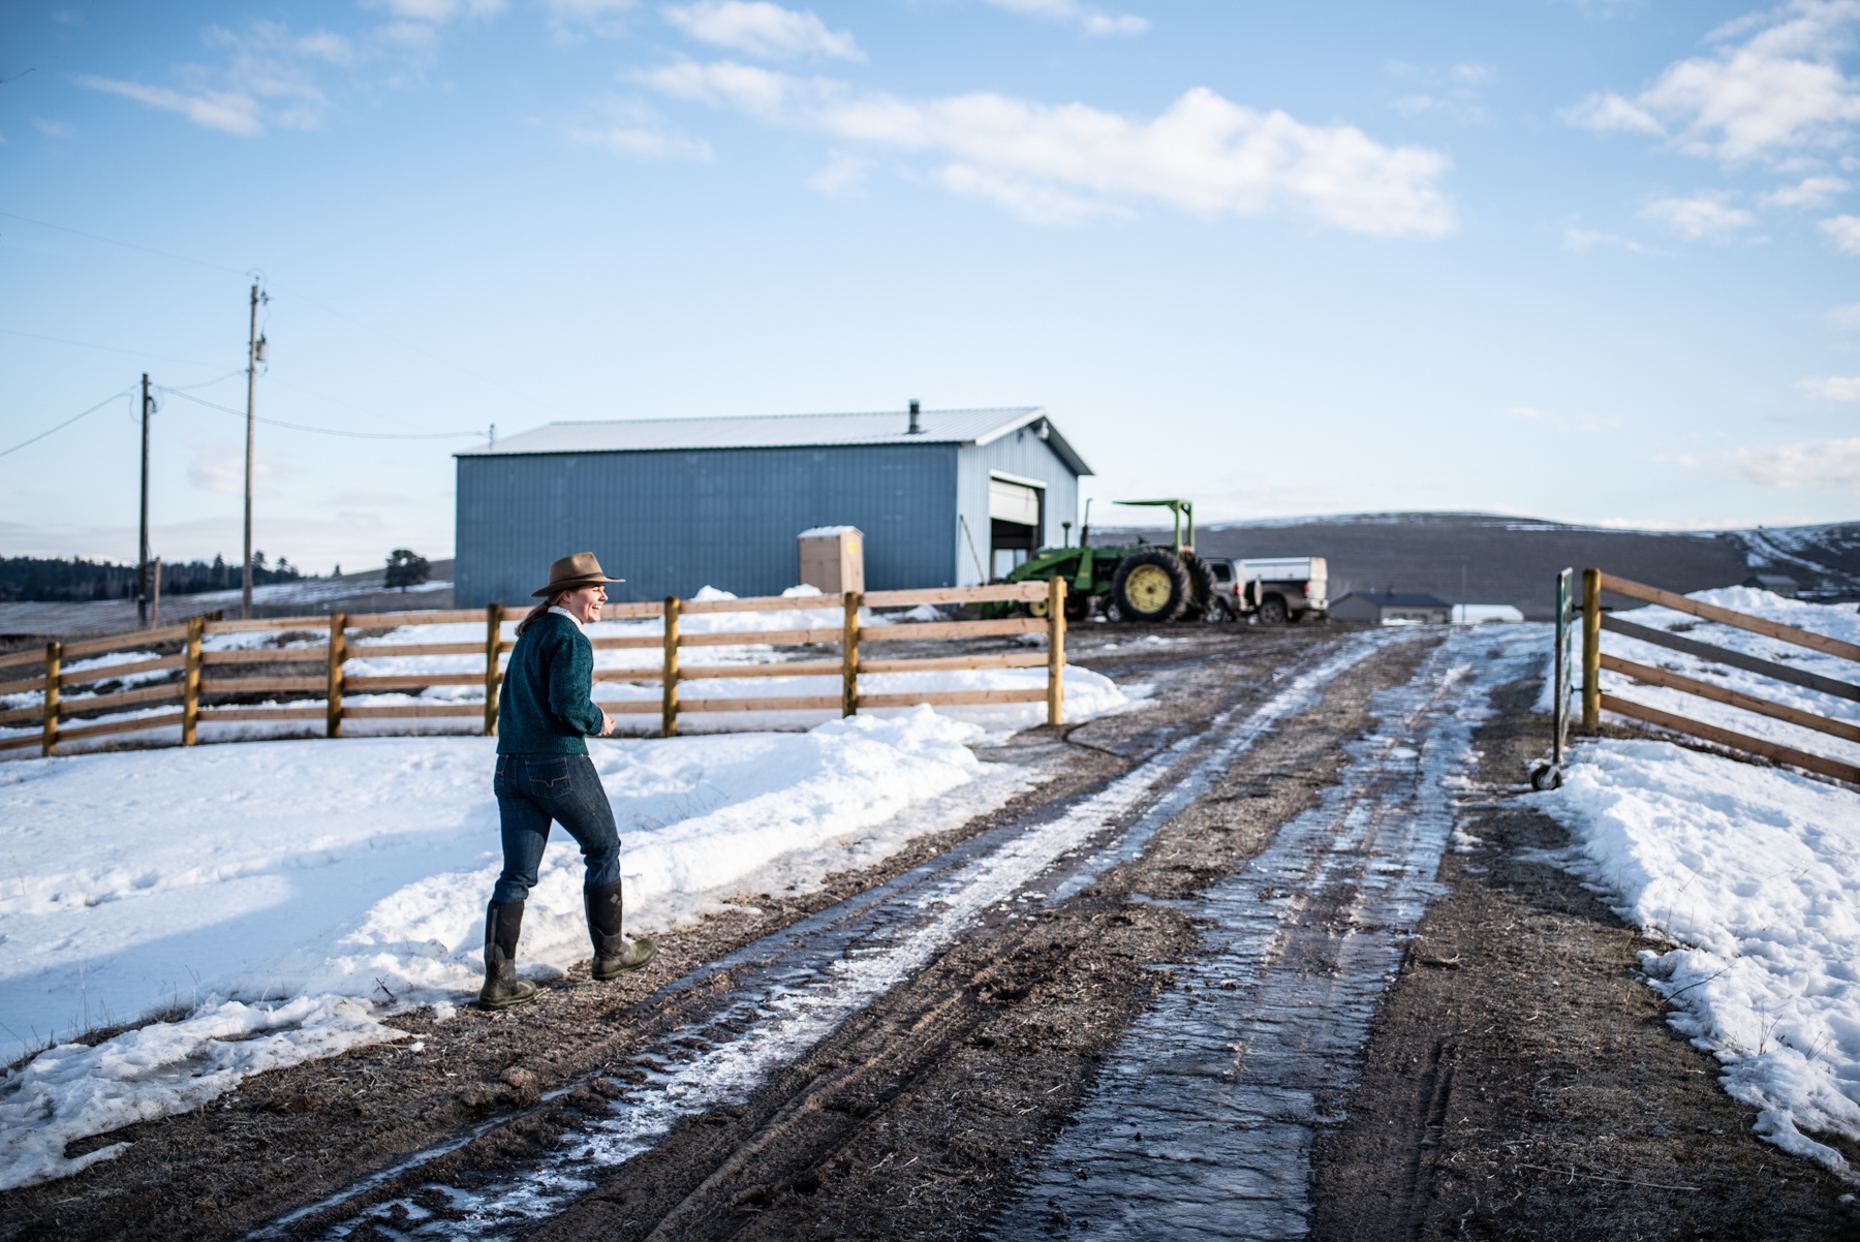 Rancher walking back to barn after feeding cattle. Isaac Miller Photography  | Agriculture & Industry Photographer  |  Commercial & Editorial photography  |   Missoula + San Antonio